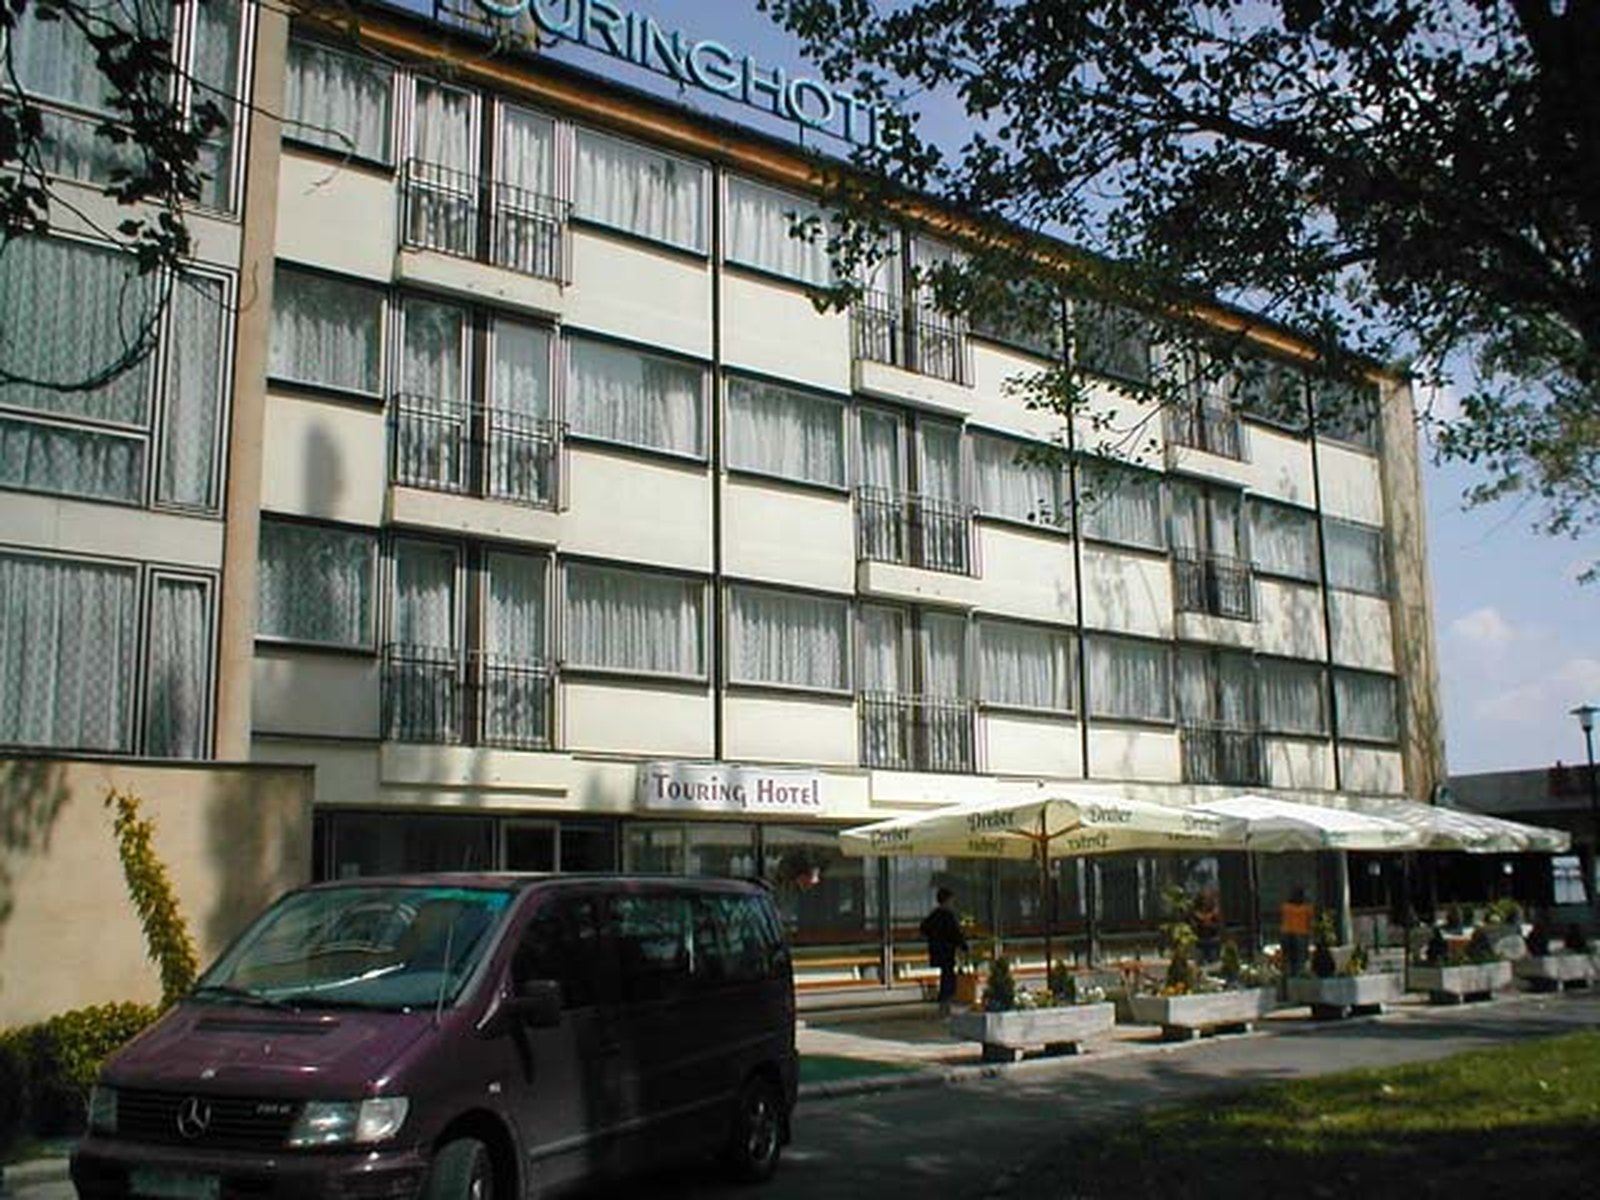 Touring Hotel